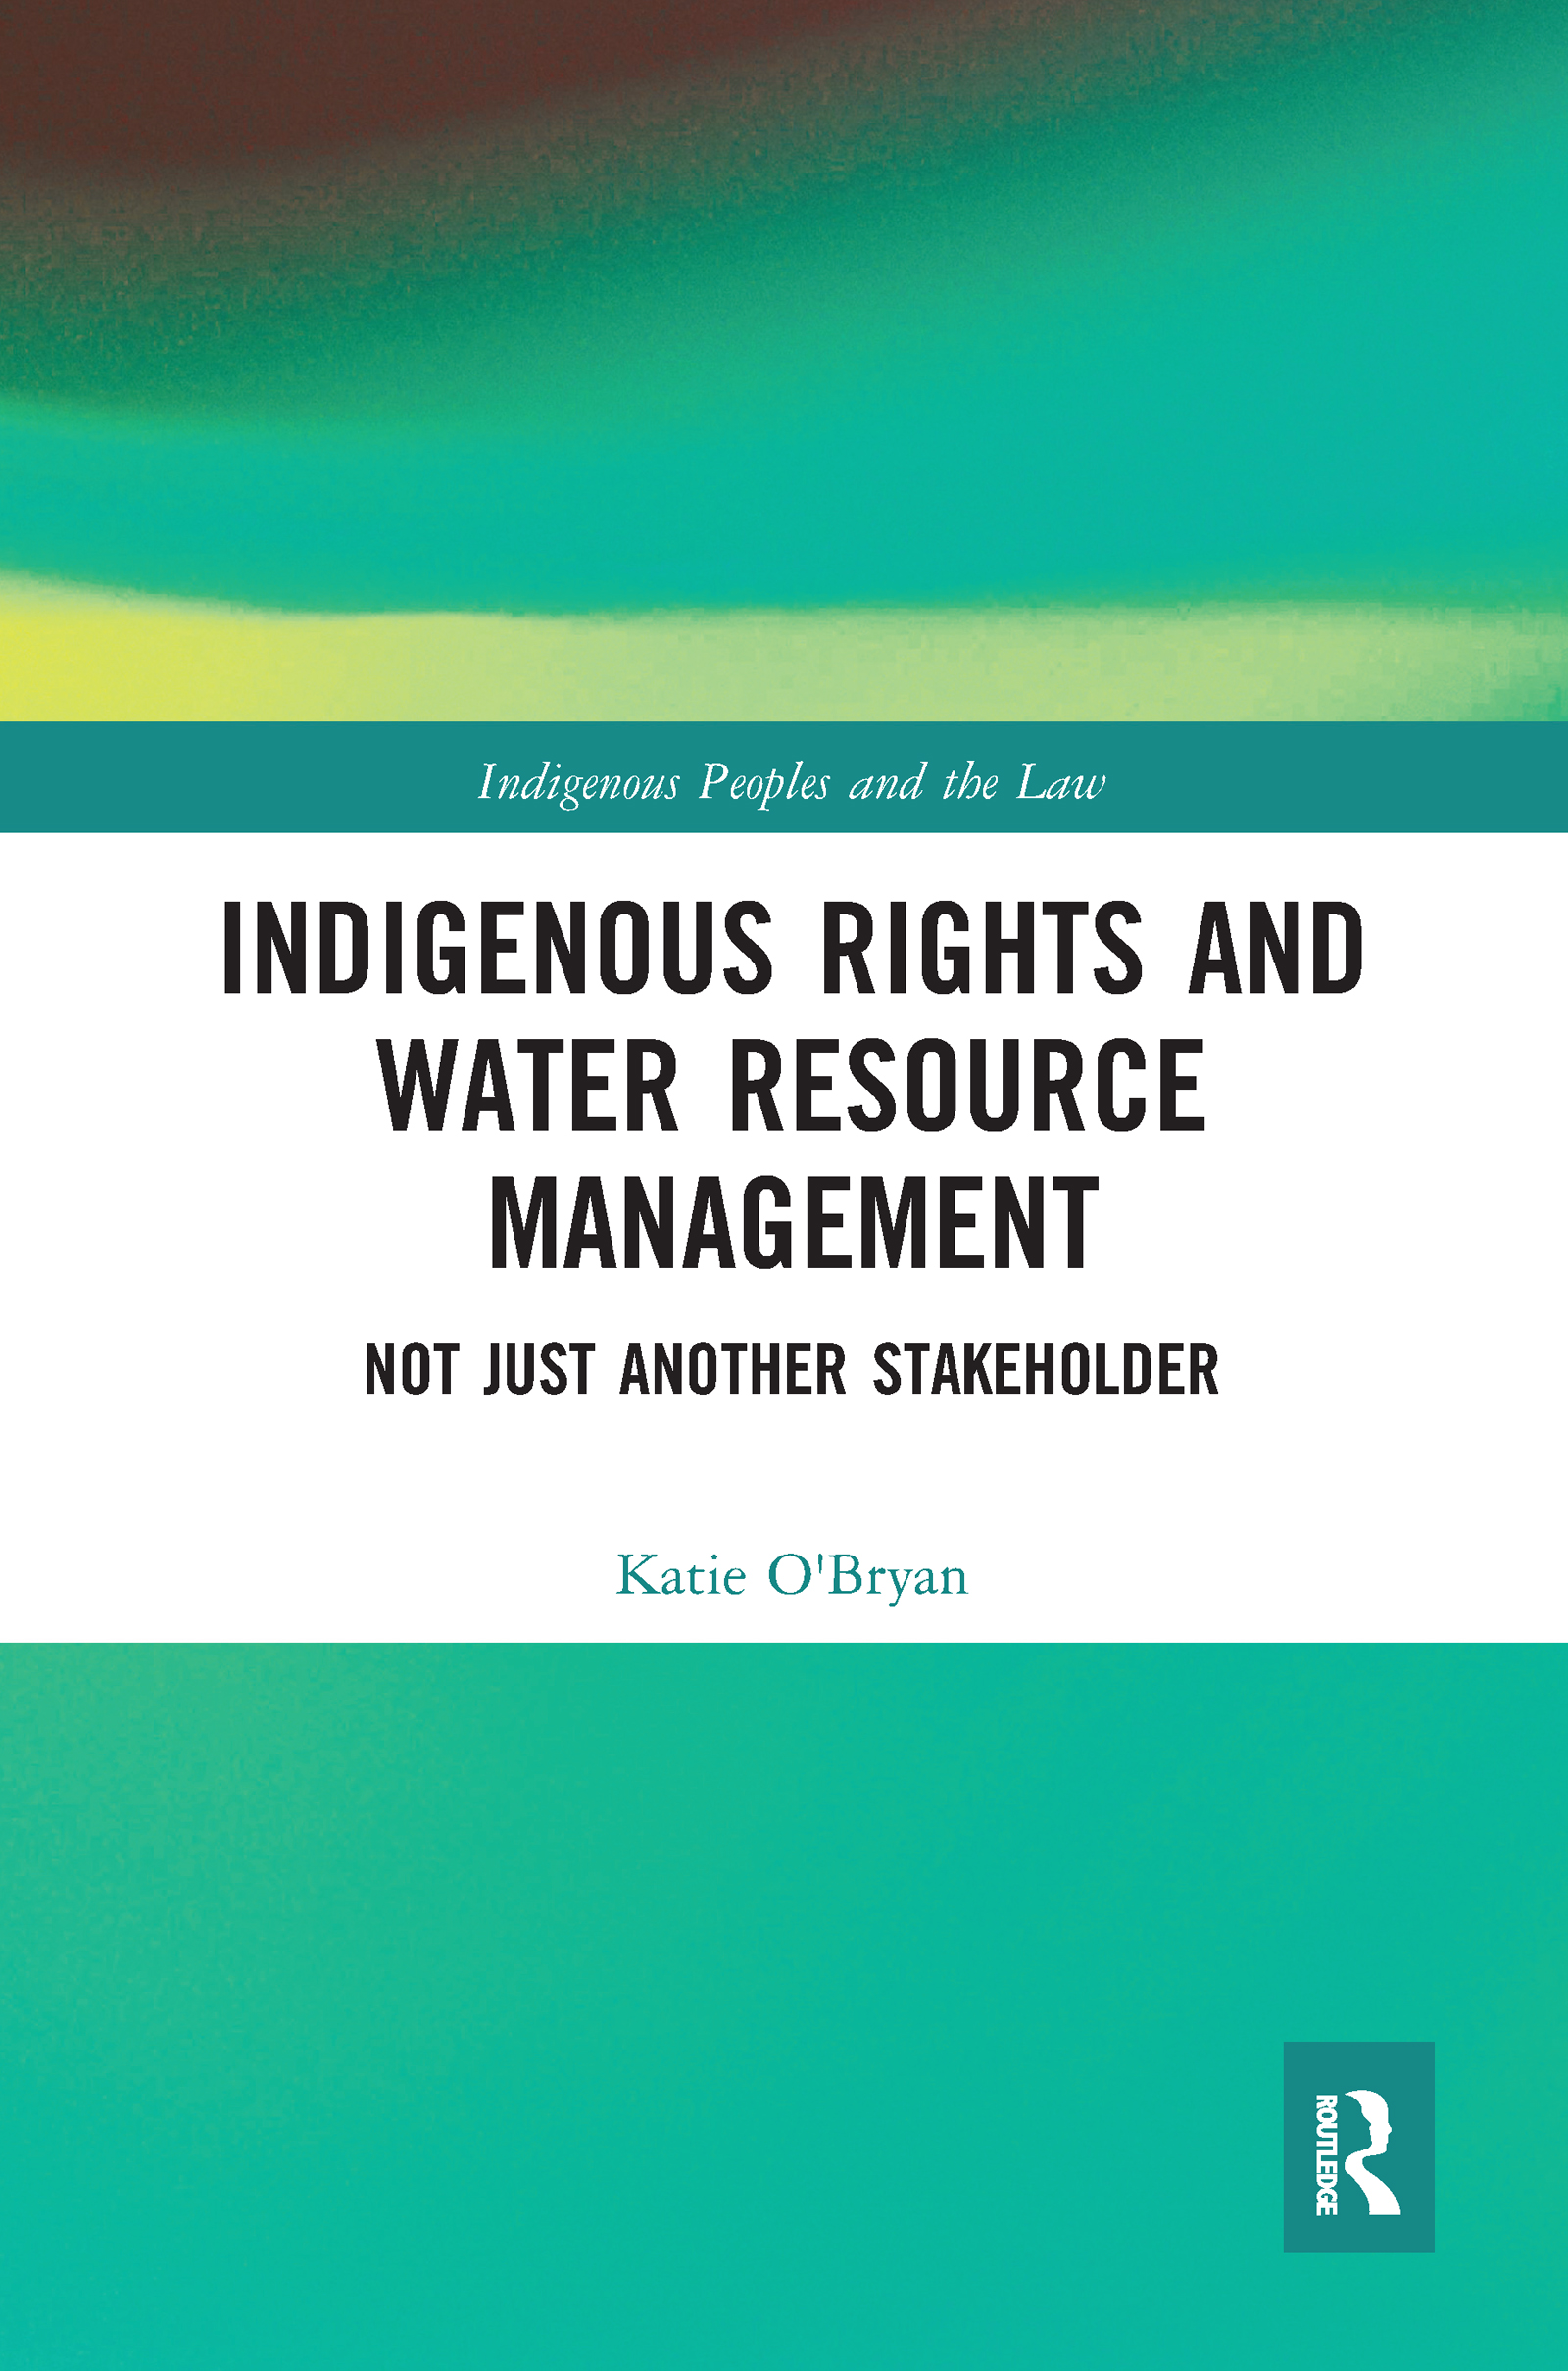 Indigenous Rights and Water Resource Management